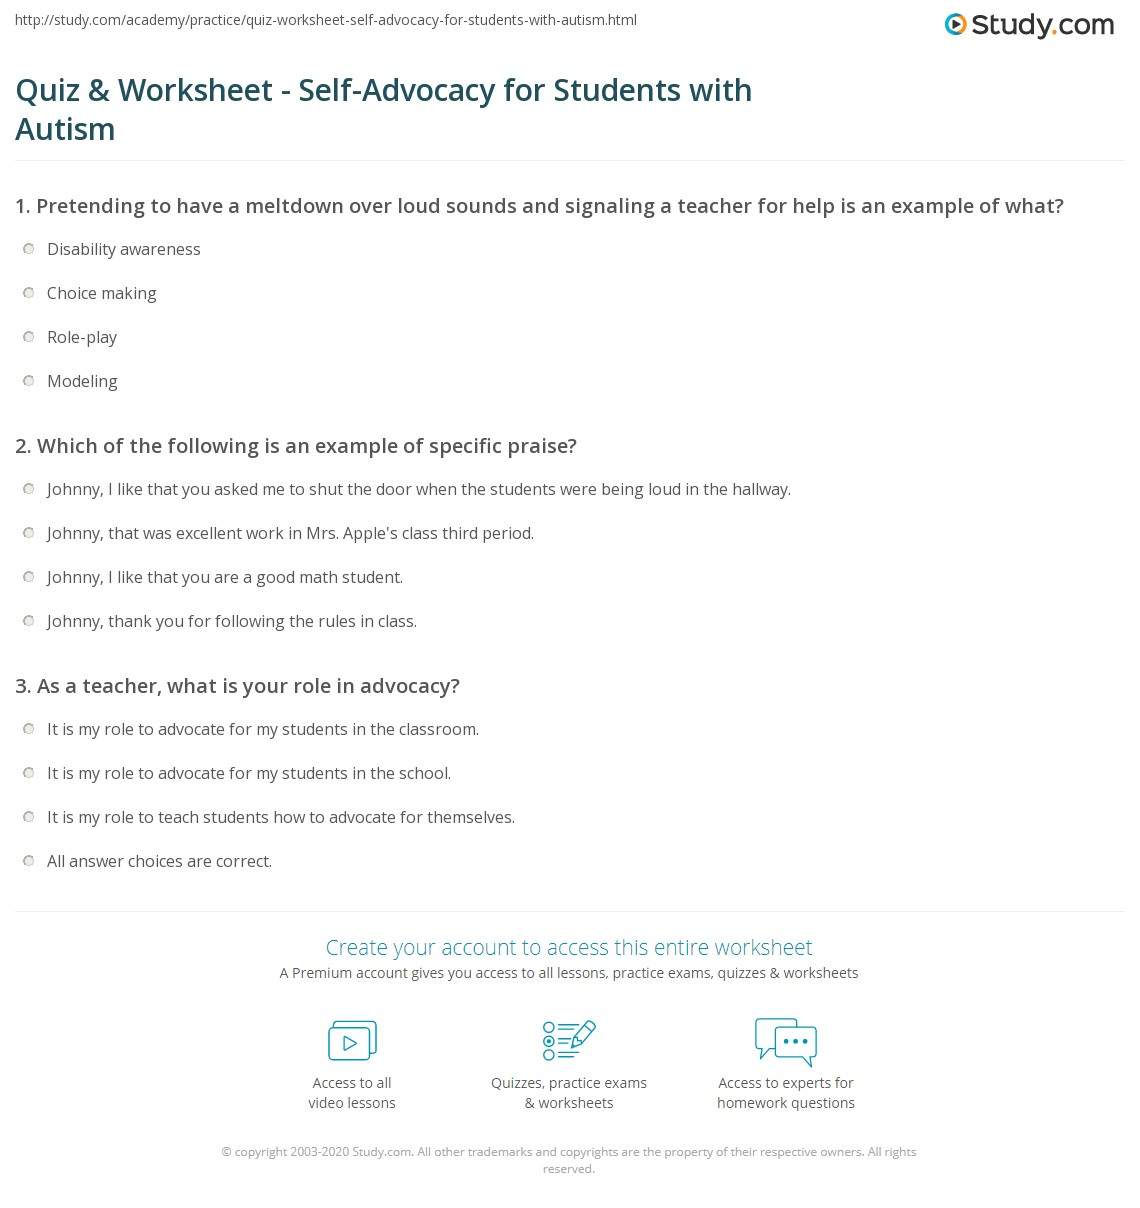 Quiz & Worksheet - Self-Advocacy for Students with Autism | Study.com